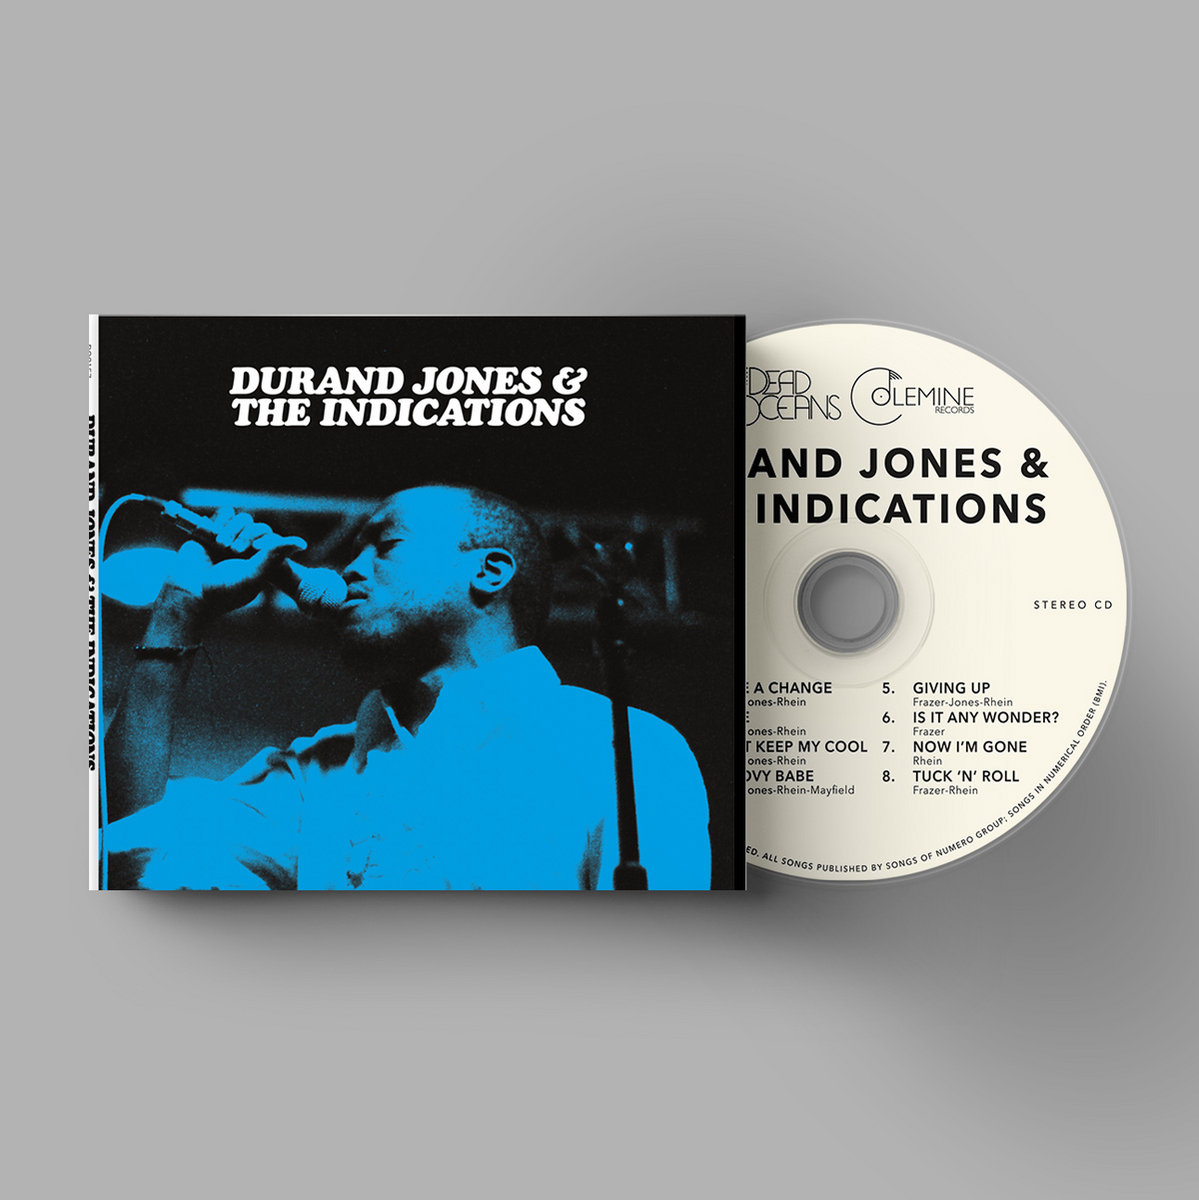 Is It Any Wonder? | Durand Jones & The Indications